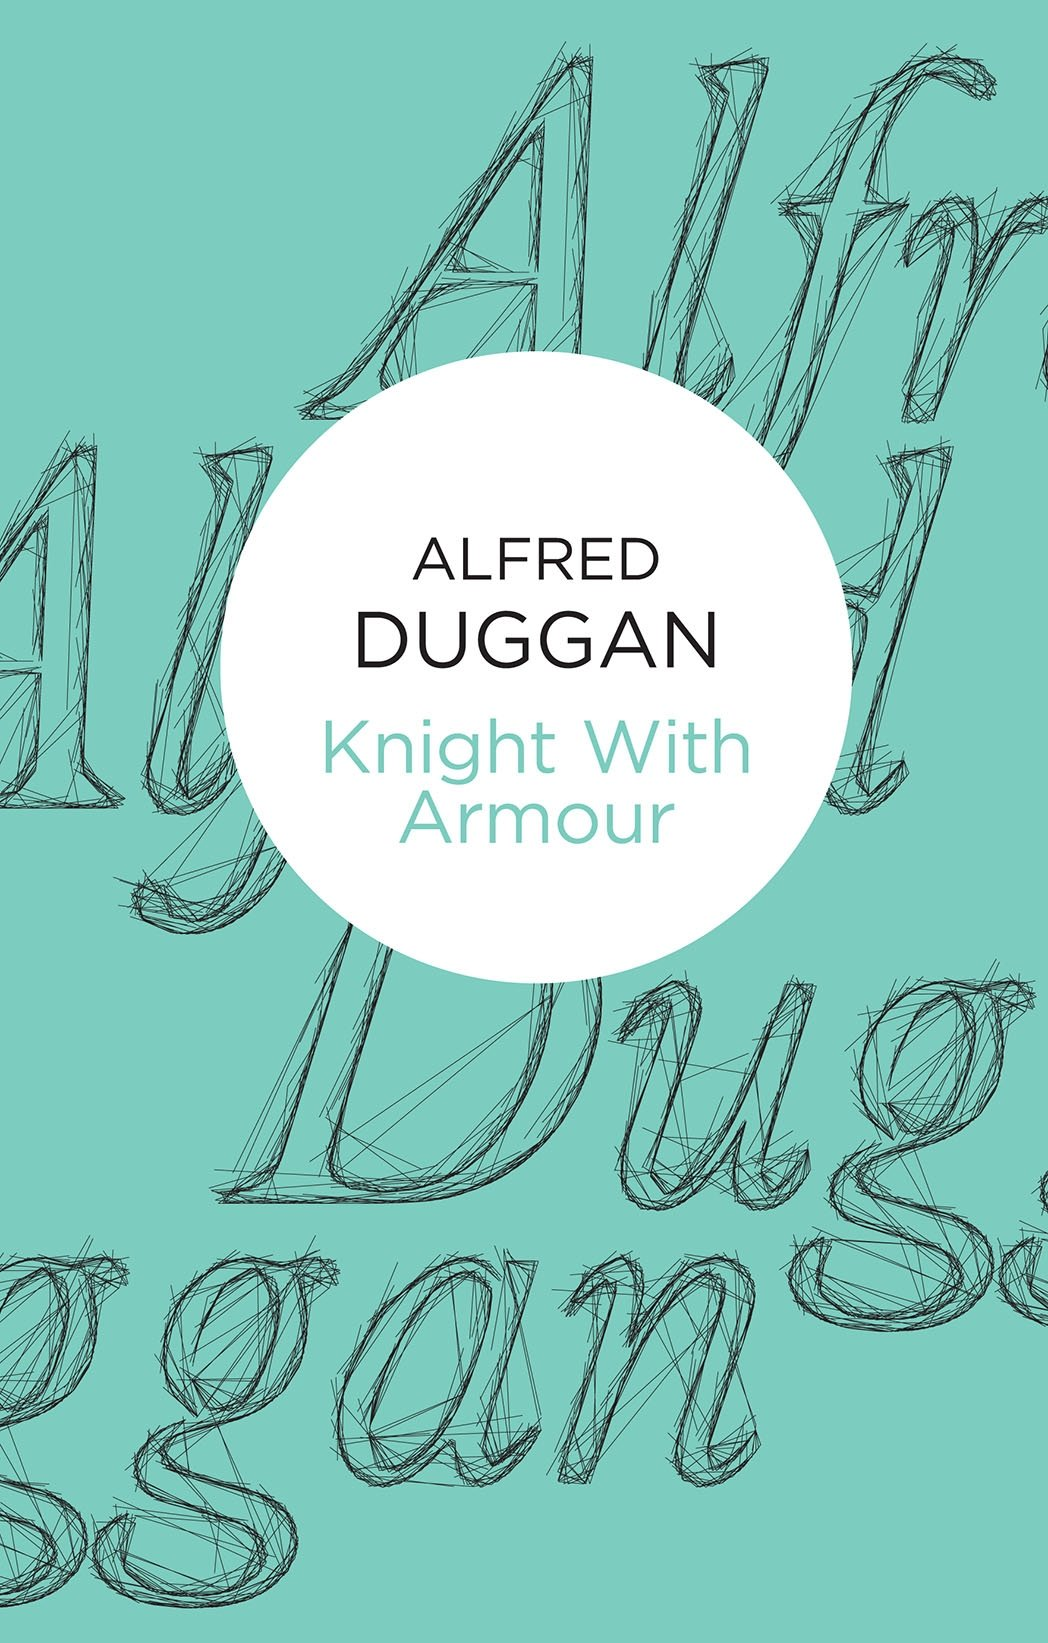 Knight with Armour: Alfred Duggan: 9781447232001: Amazon.com: Books